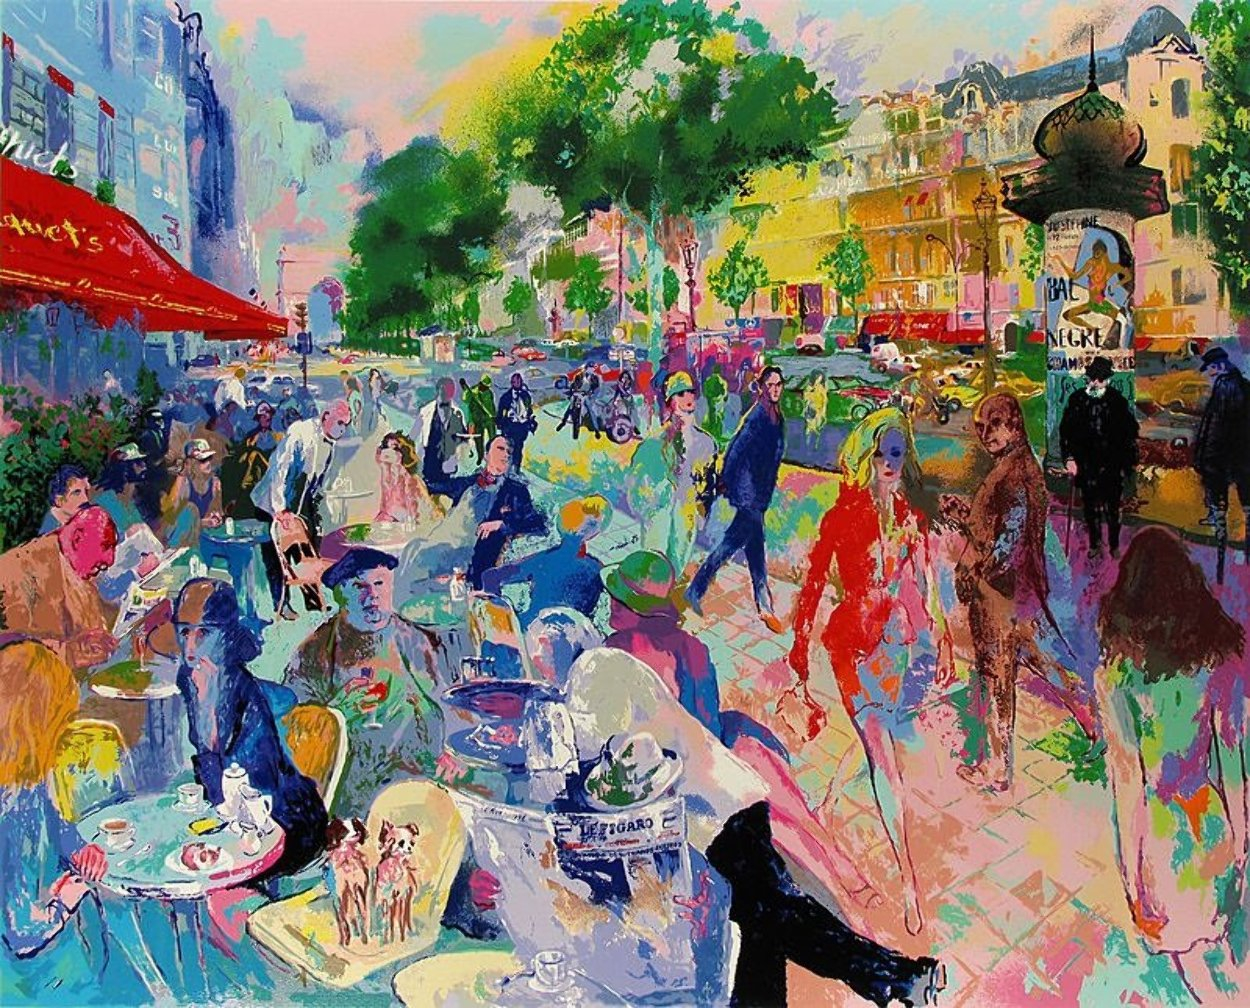 Cafe Fouquet's Limited Edition Print by LeRoy Neiman